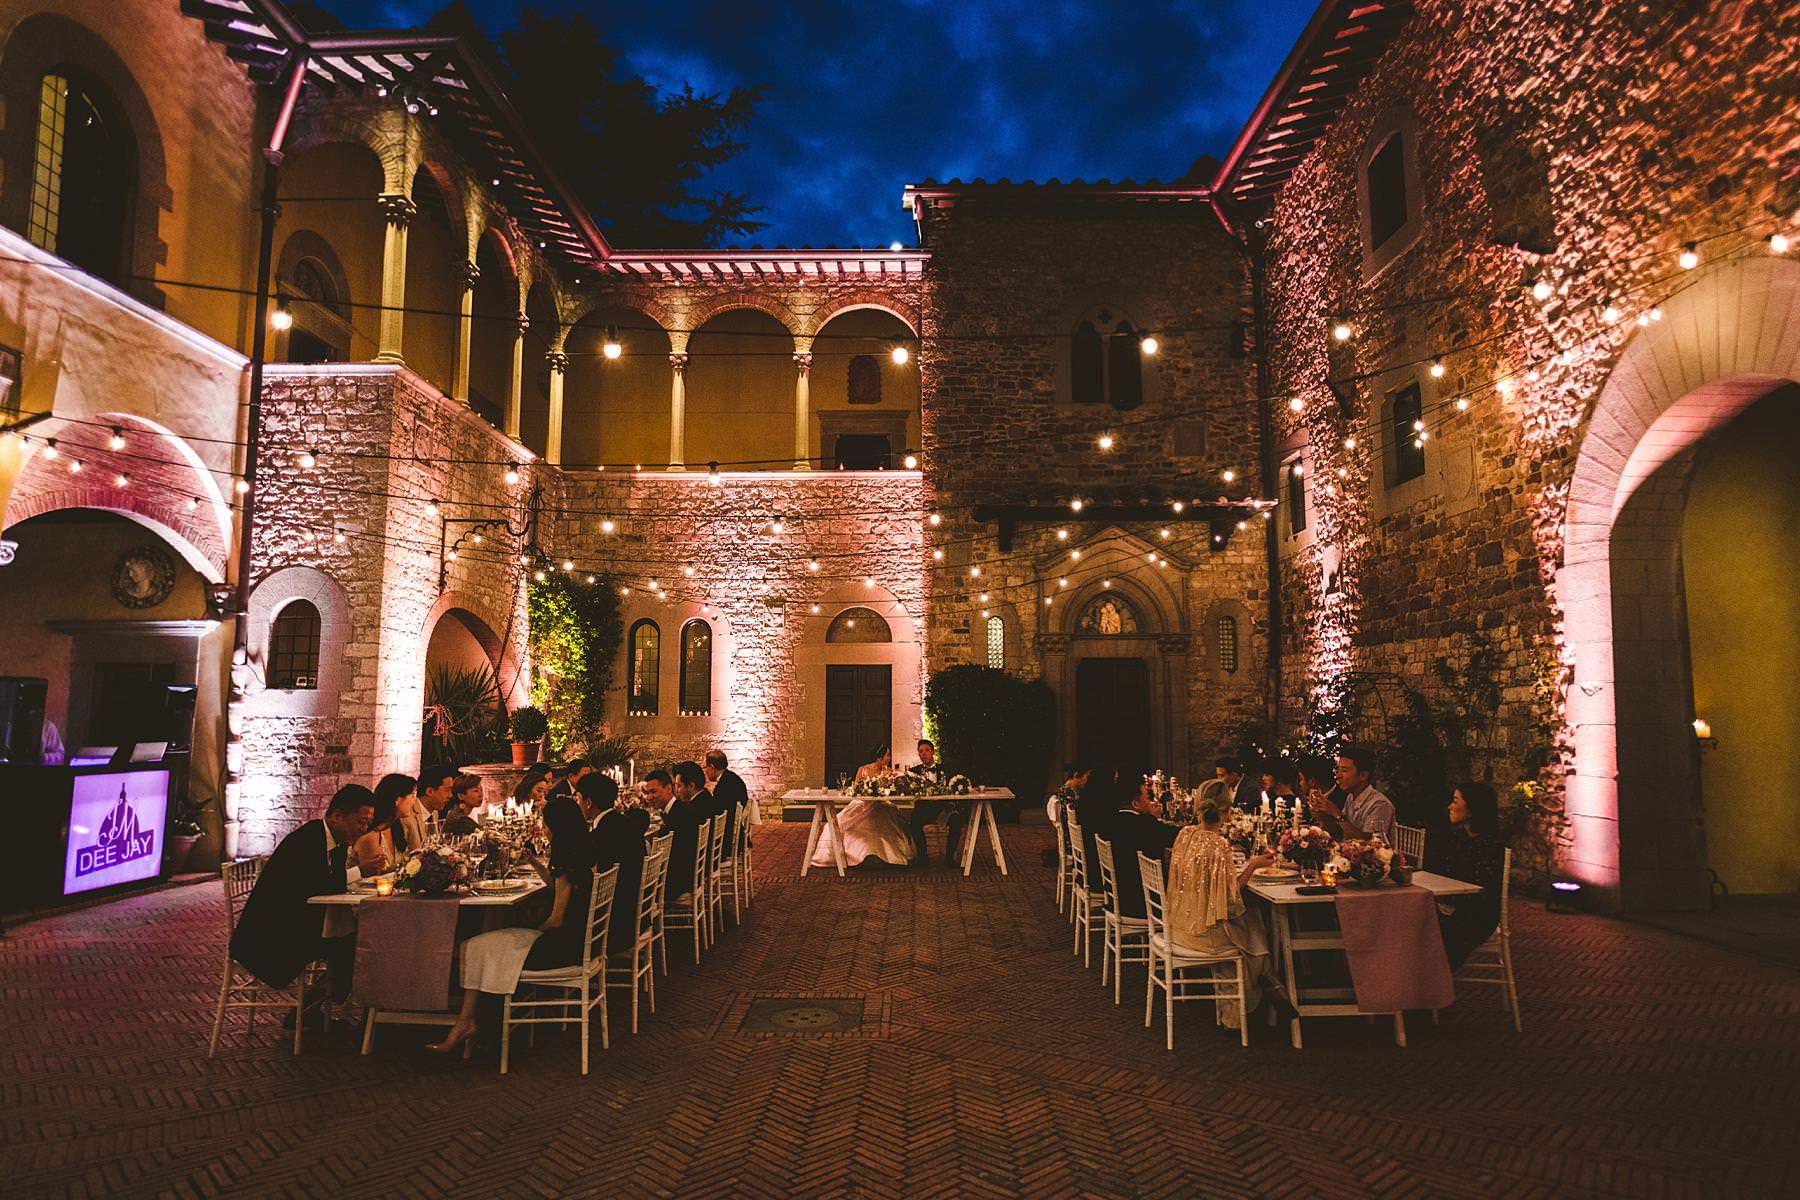 Incredible and charming wedding dinner atmosphere in the courtyard of Castello Il Palagio. Intimate destination wedding in Tuscany countryside